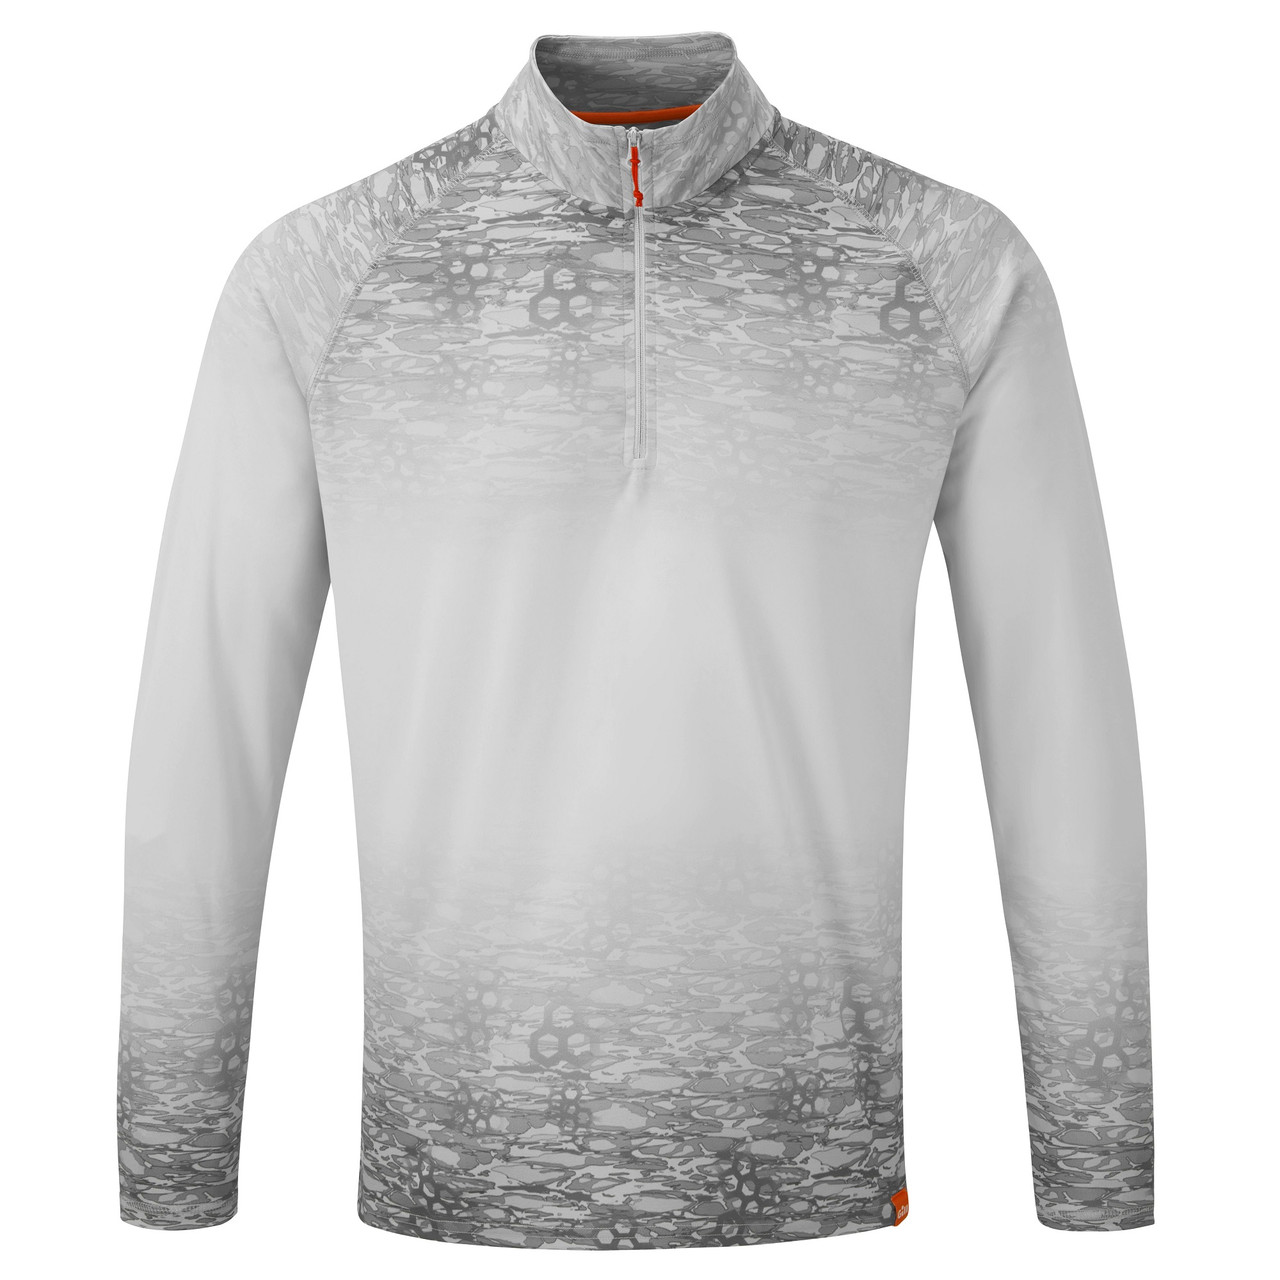 Gill Men's UV Tec 1/4 Zip Long Sleeve Fishing Shirt UV009